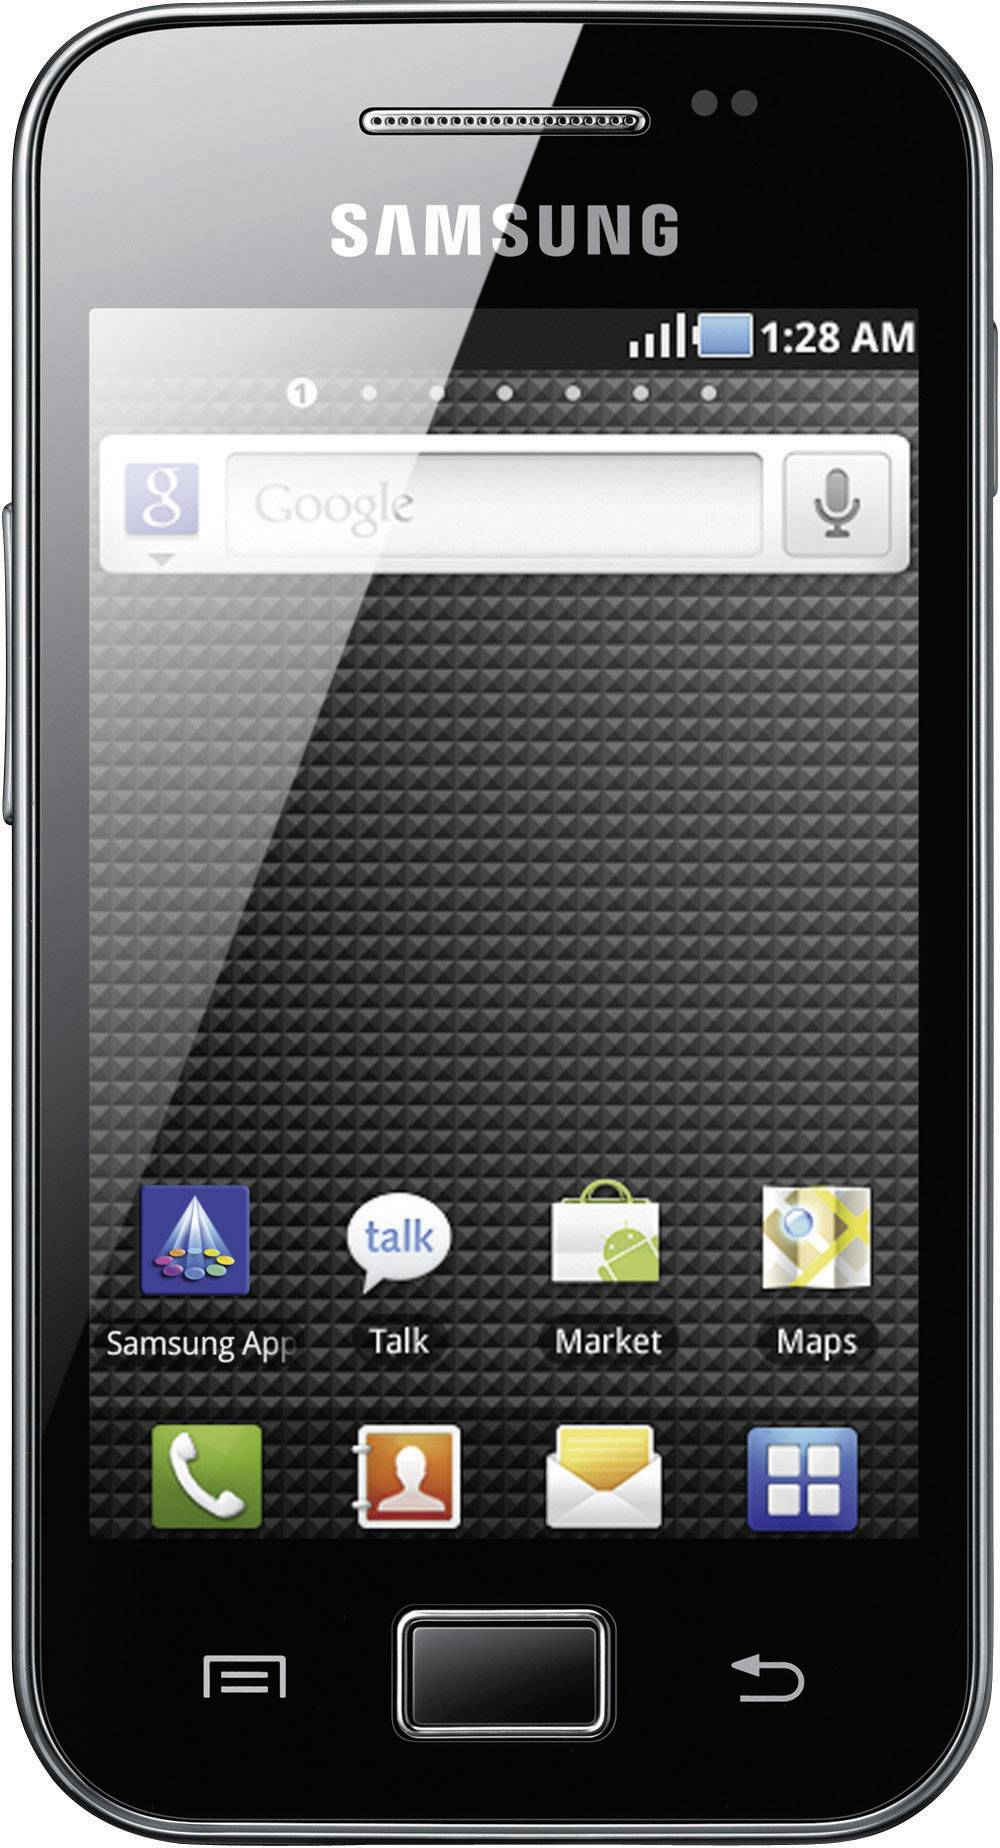 samsung galaxy ace s5830 android 2 2 sim free smartphone from rh conrad electronic co uk Samsung Galaxy Ace 3 samsung galaxy ace s5830 manual pdf download